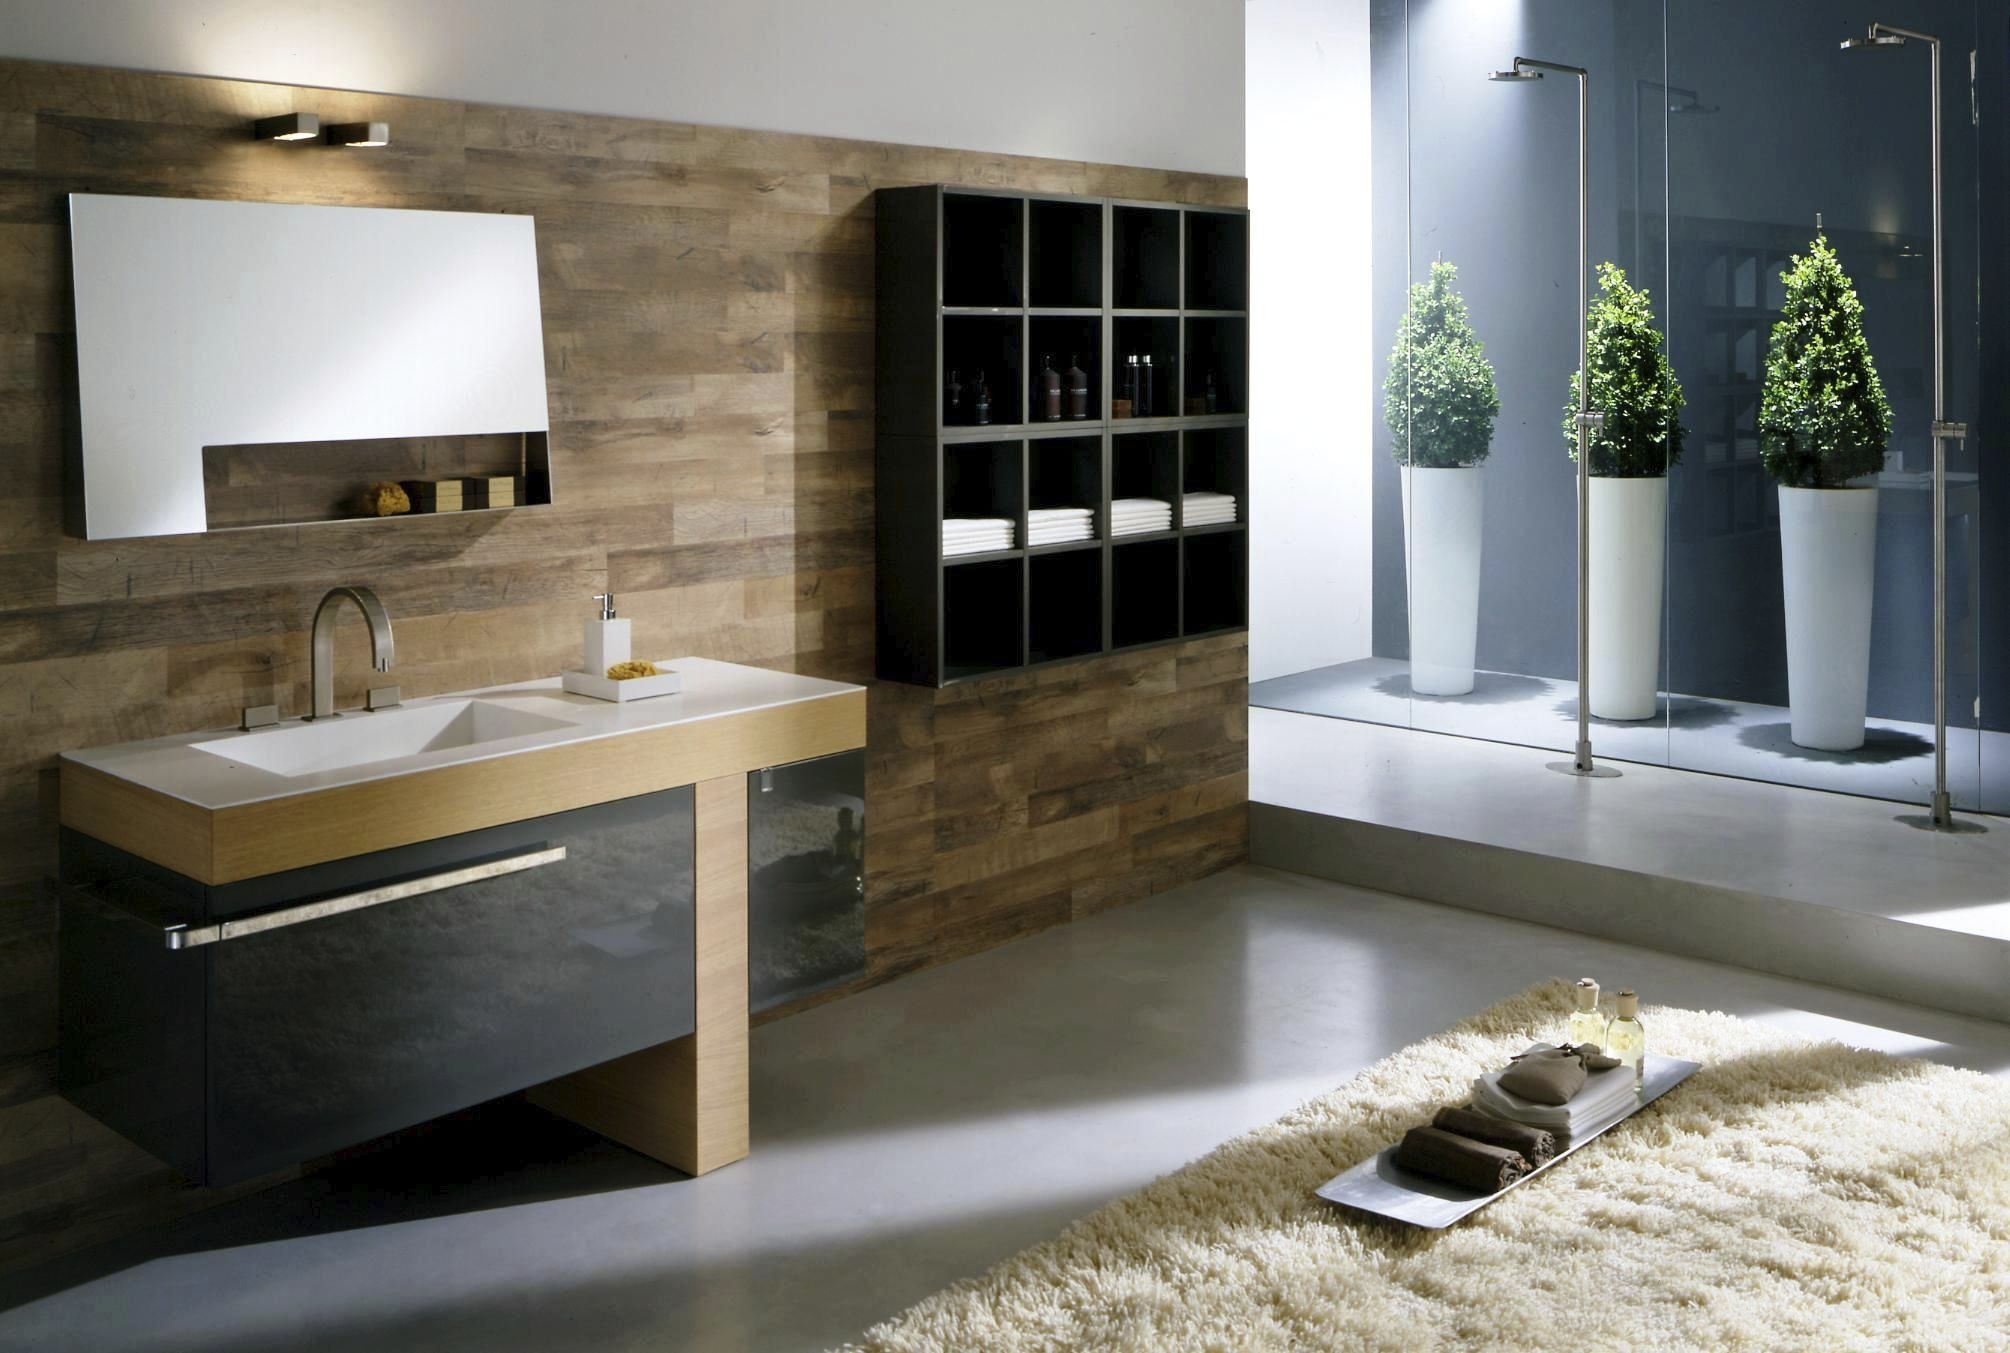 Best Contemporary bathroom design ideas 18